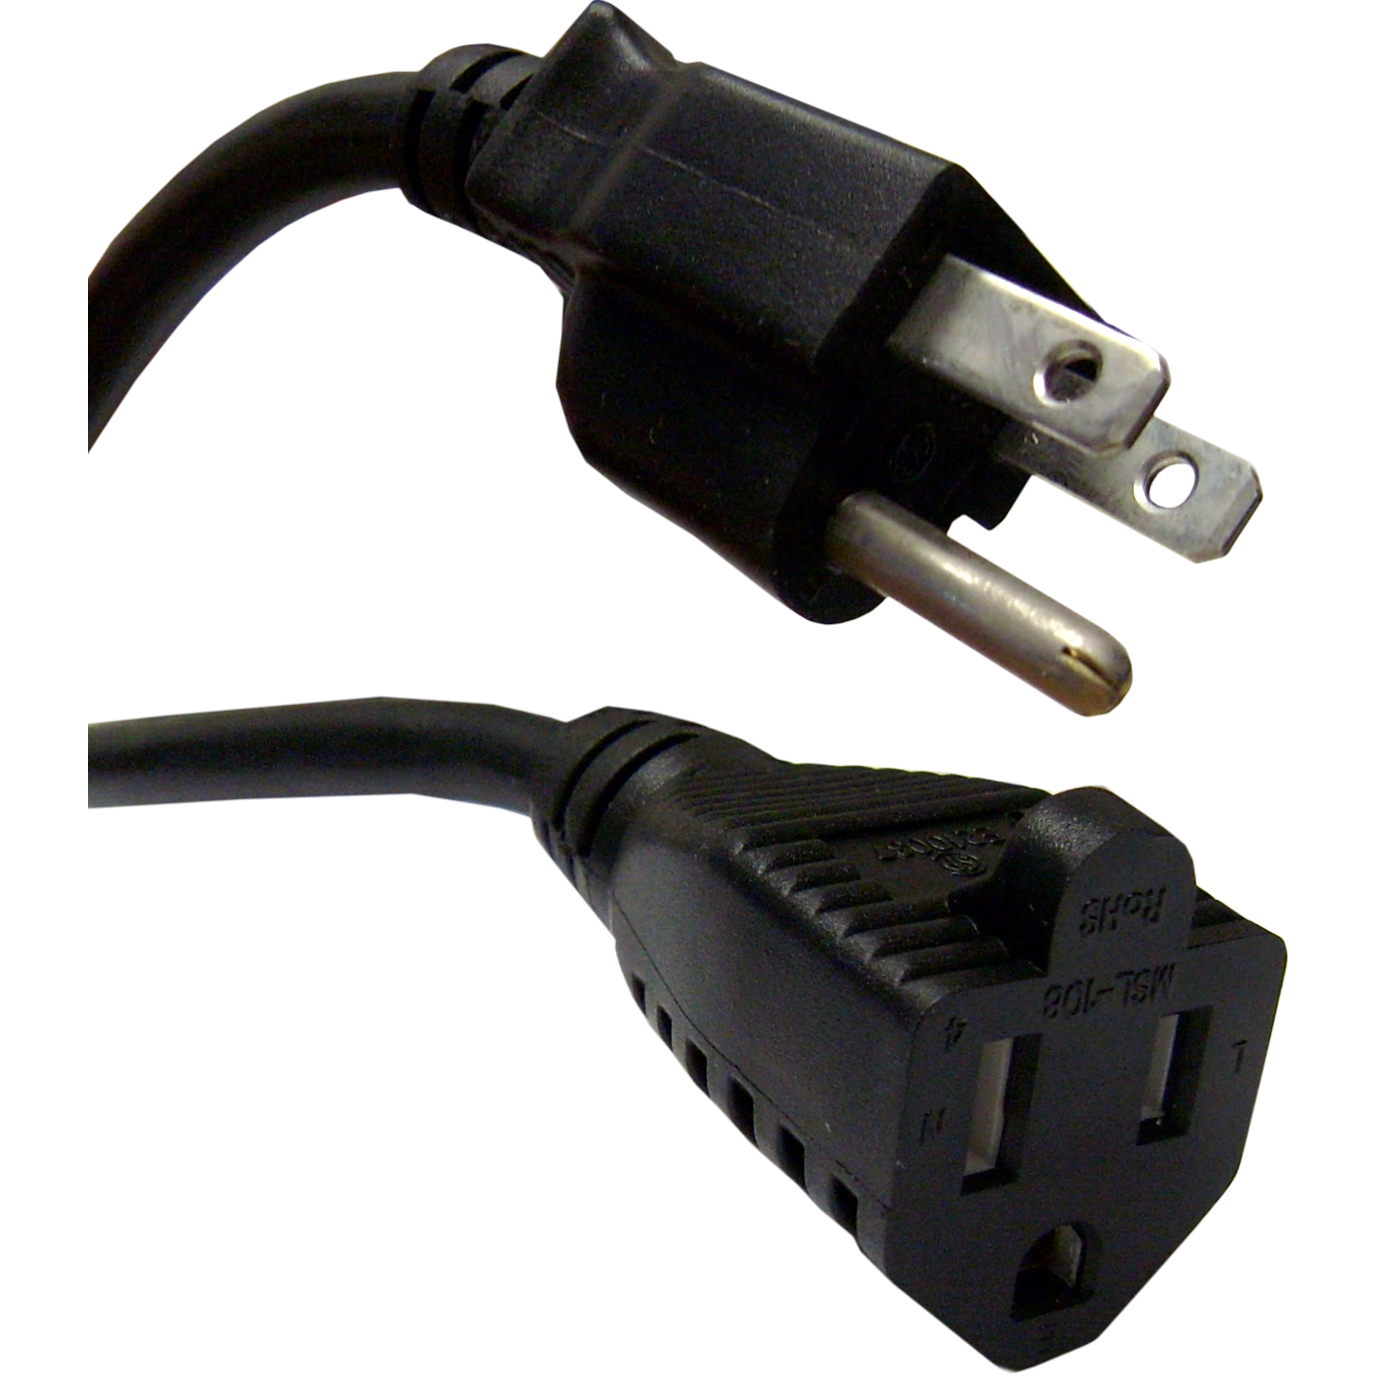 Offex Power Extension Cord, Black, NEMA 5-15P to NEMA 5-15R, 10 Amp, 10 foot